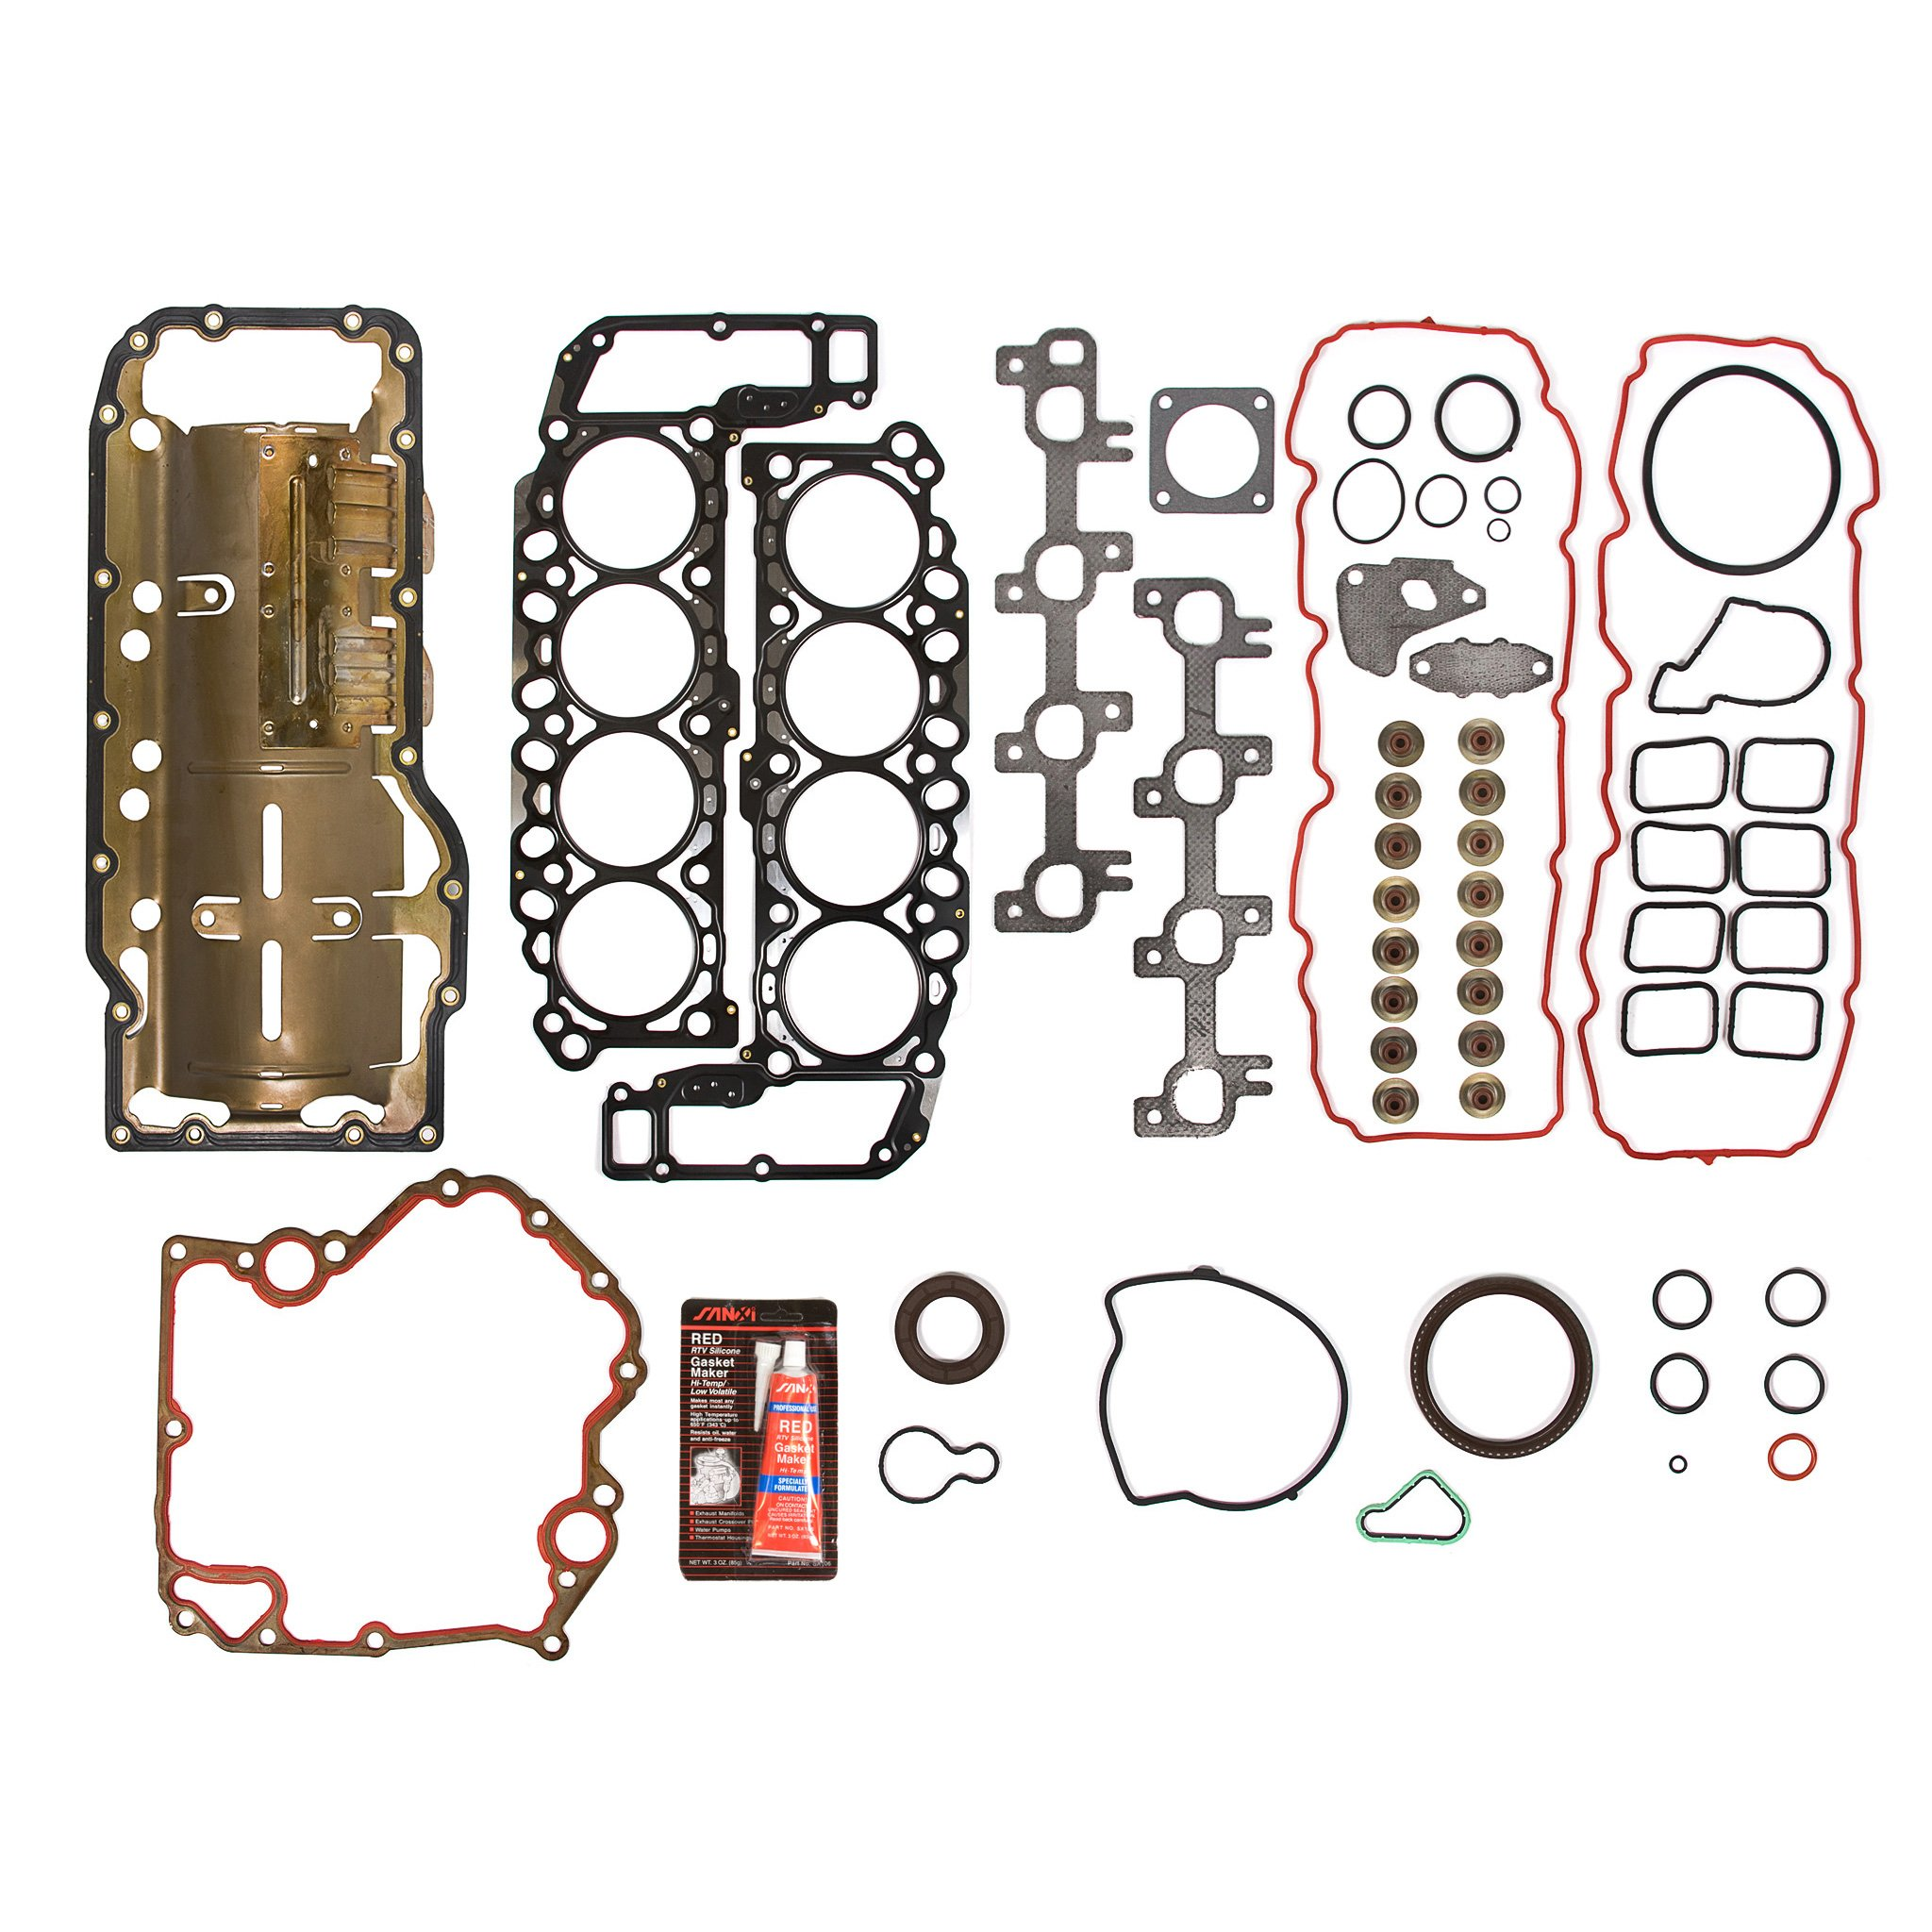 Evergreen 9-30400 Full Gasket Set by Evergreen